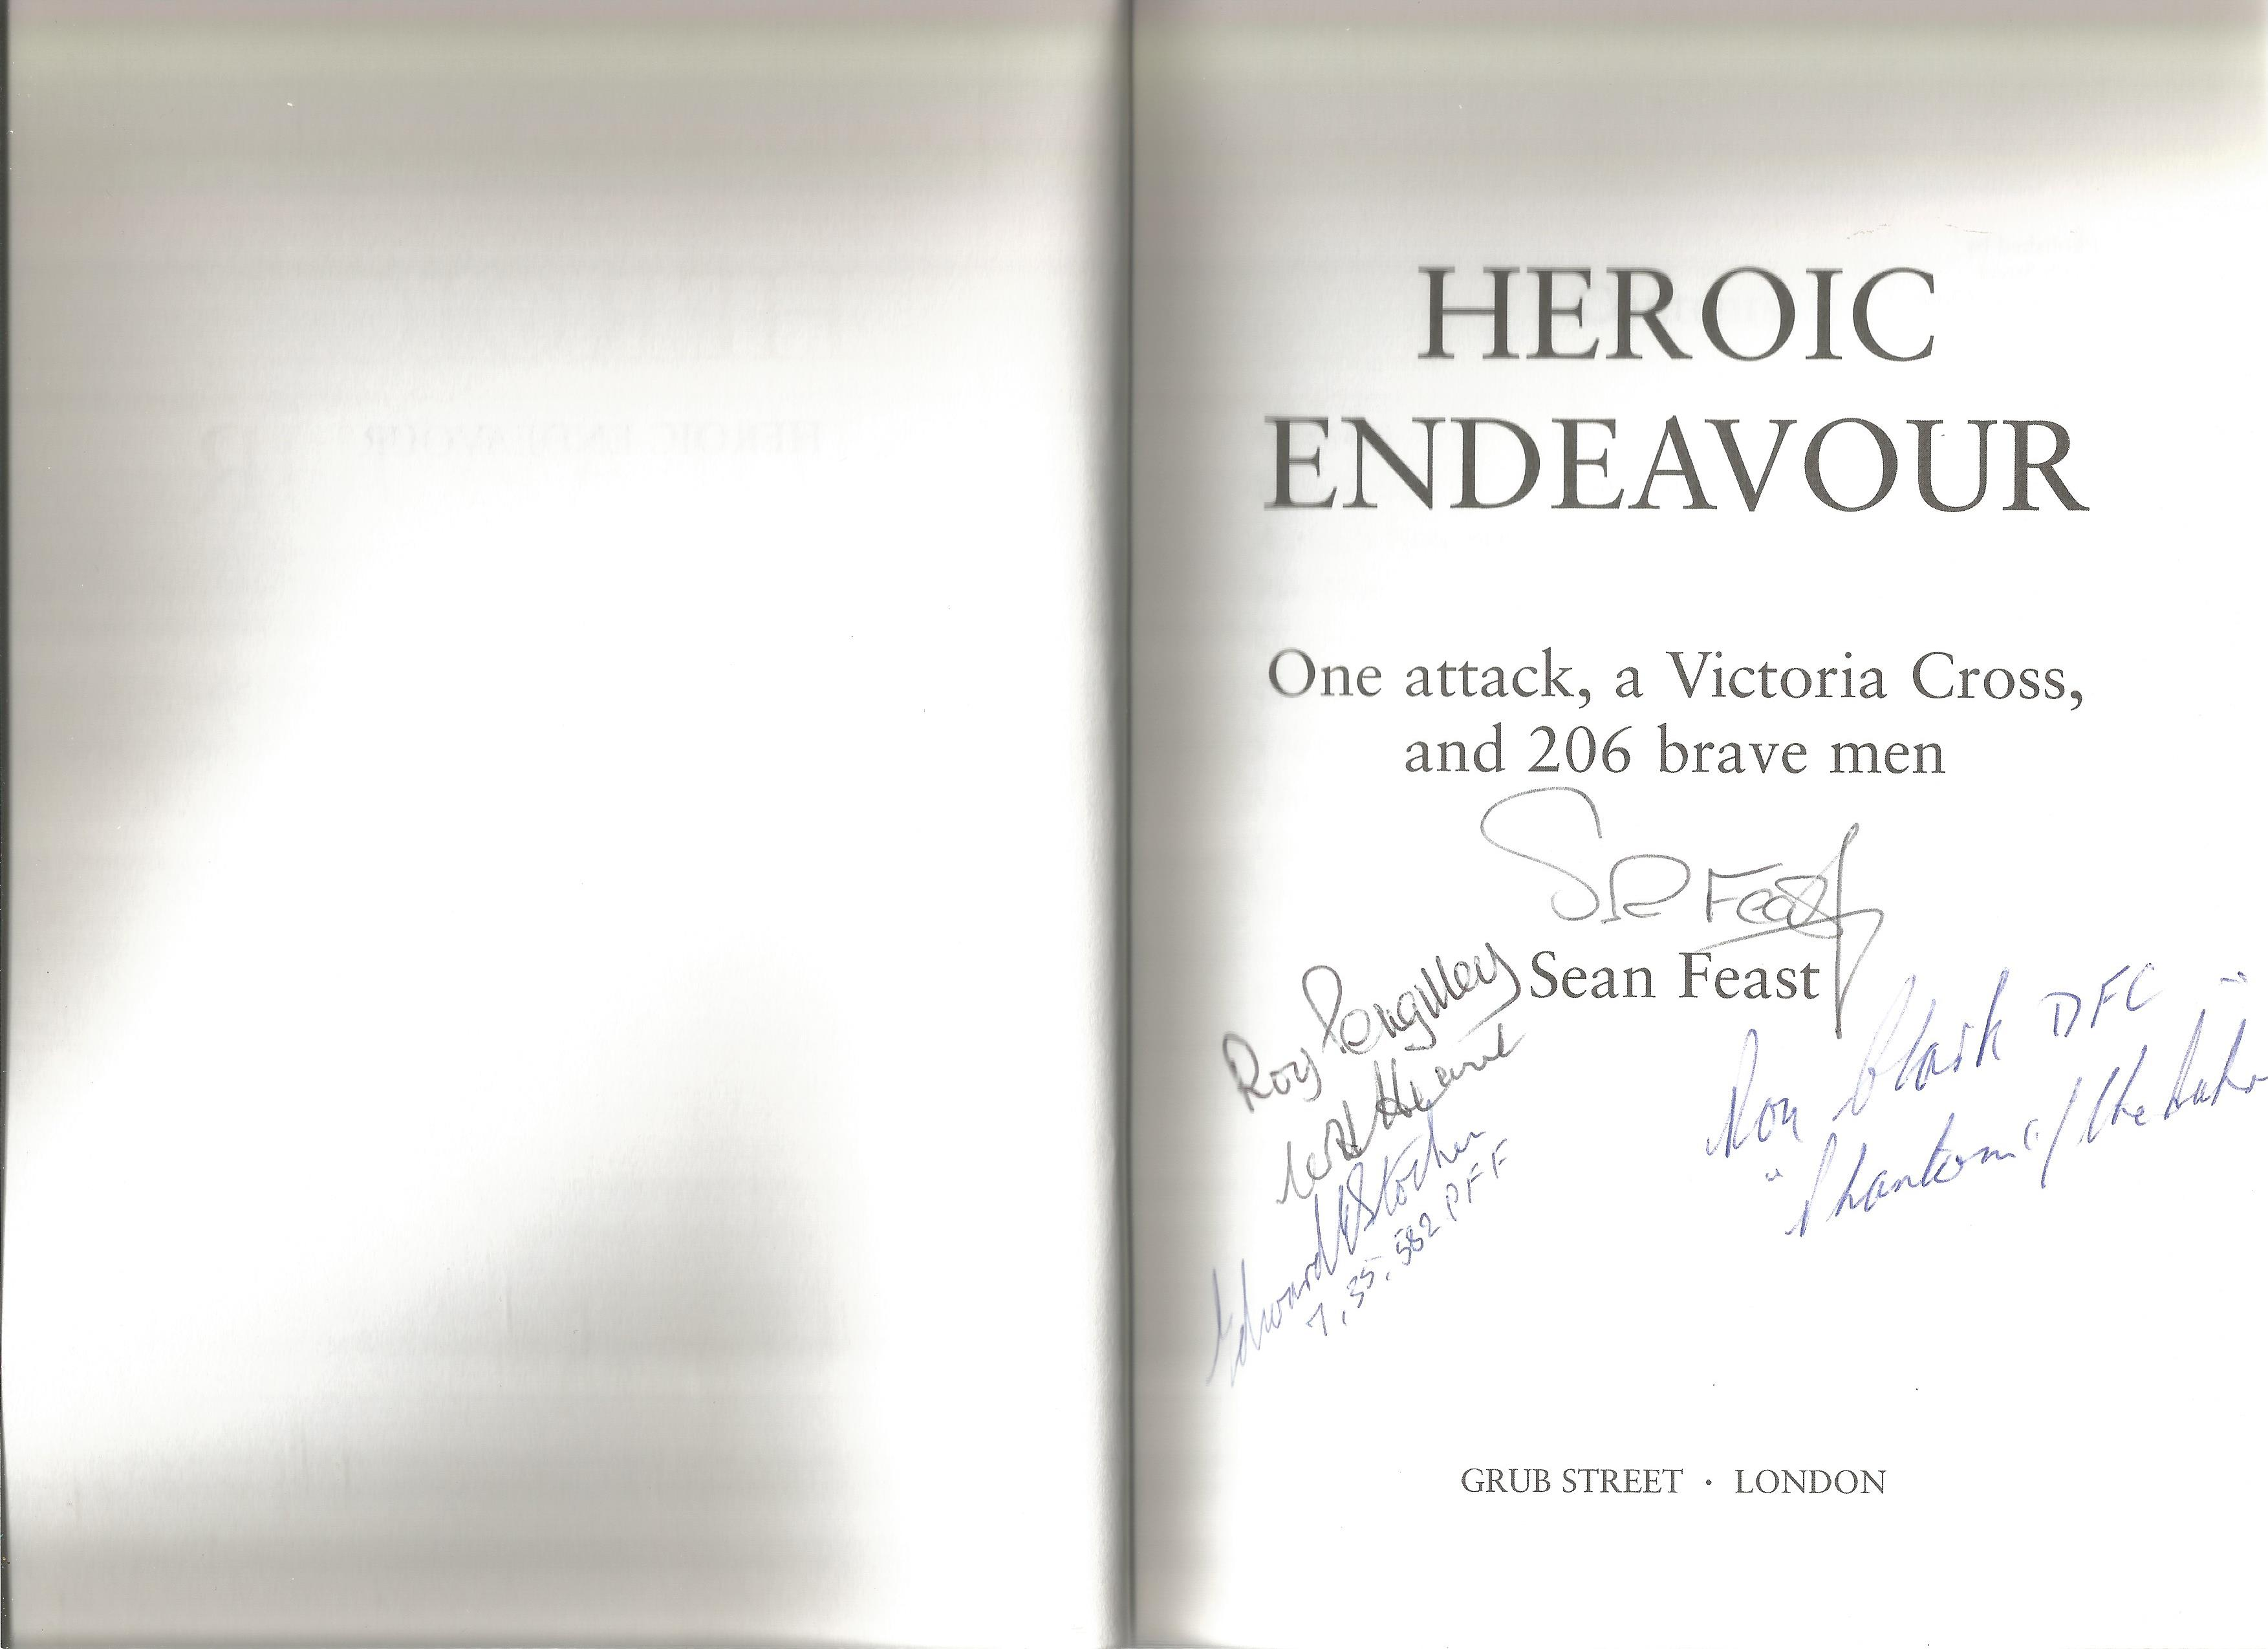 Sean Feast. Heroic Endeavour. The remarkable story of one pathfinder force attack, a Victoria - Image 3 of 3